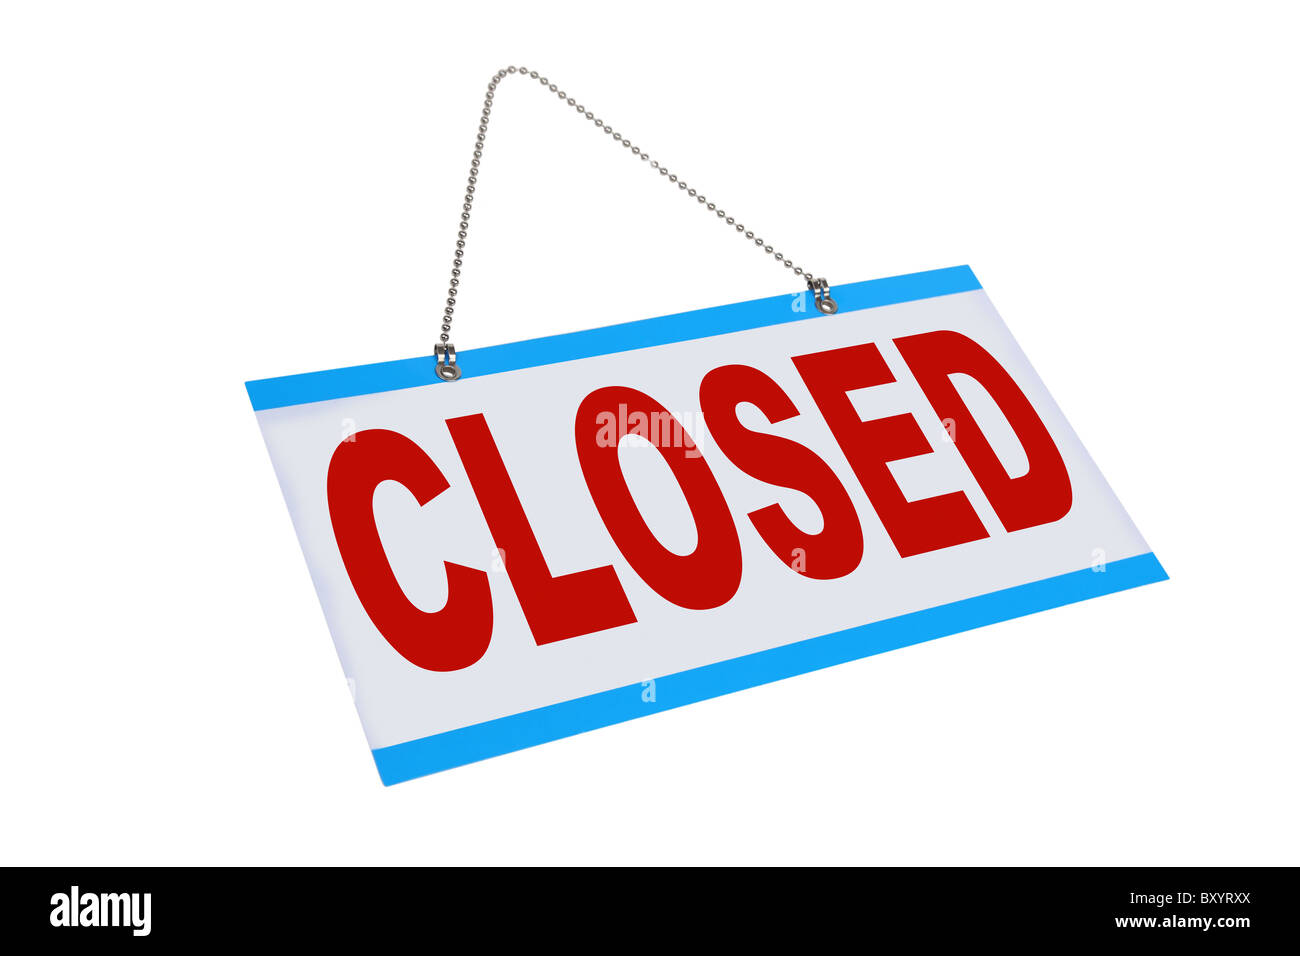 Closed sign on white background - Stock Image